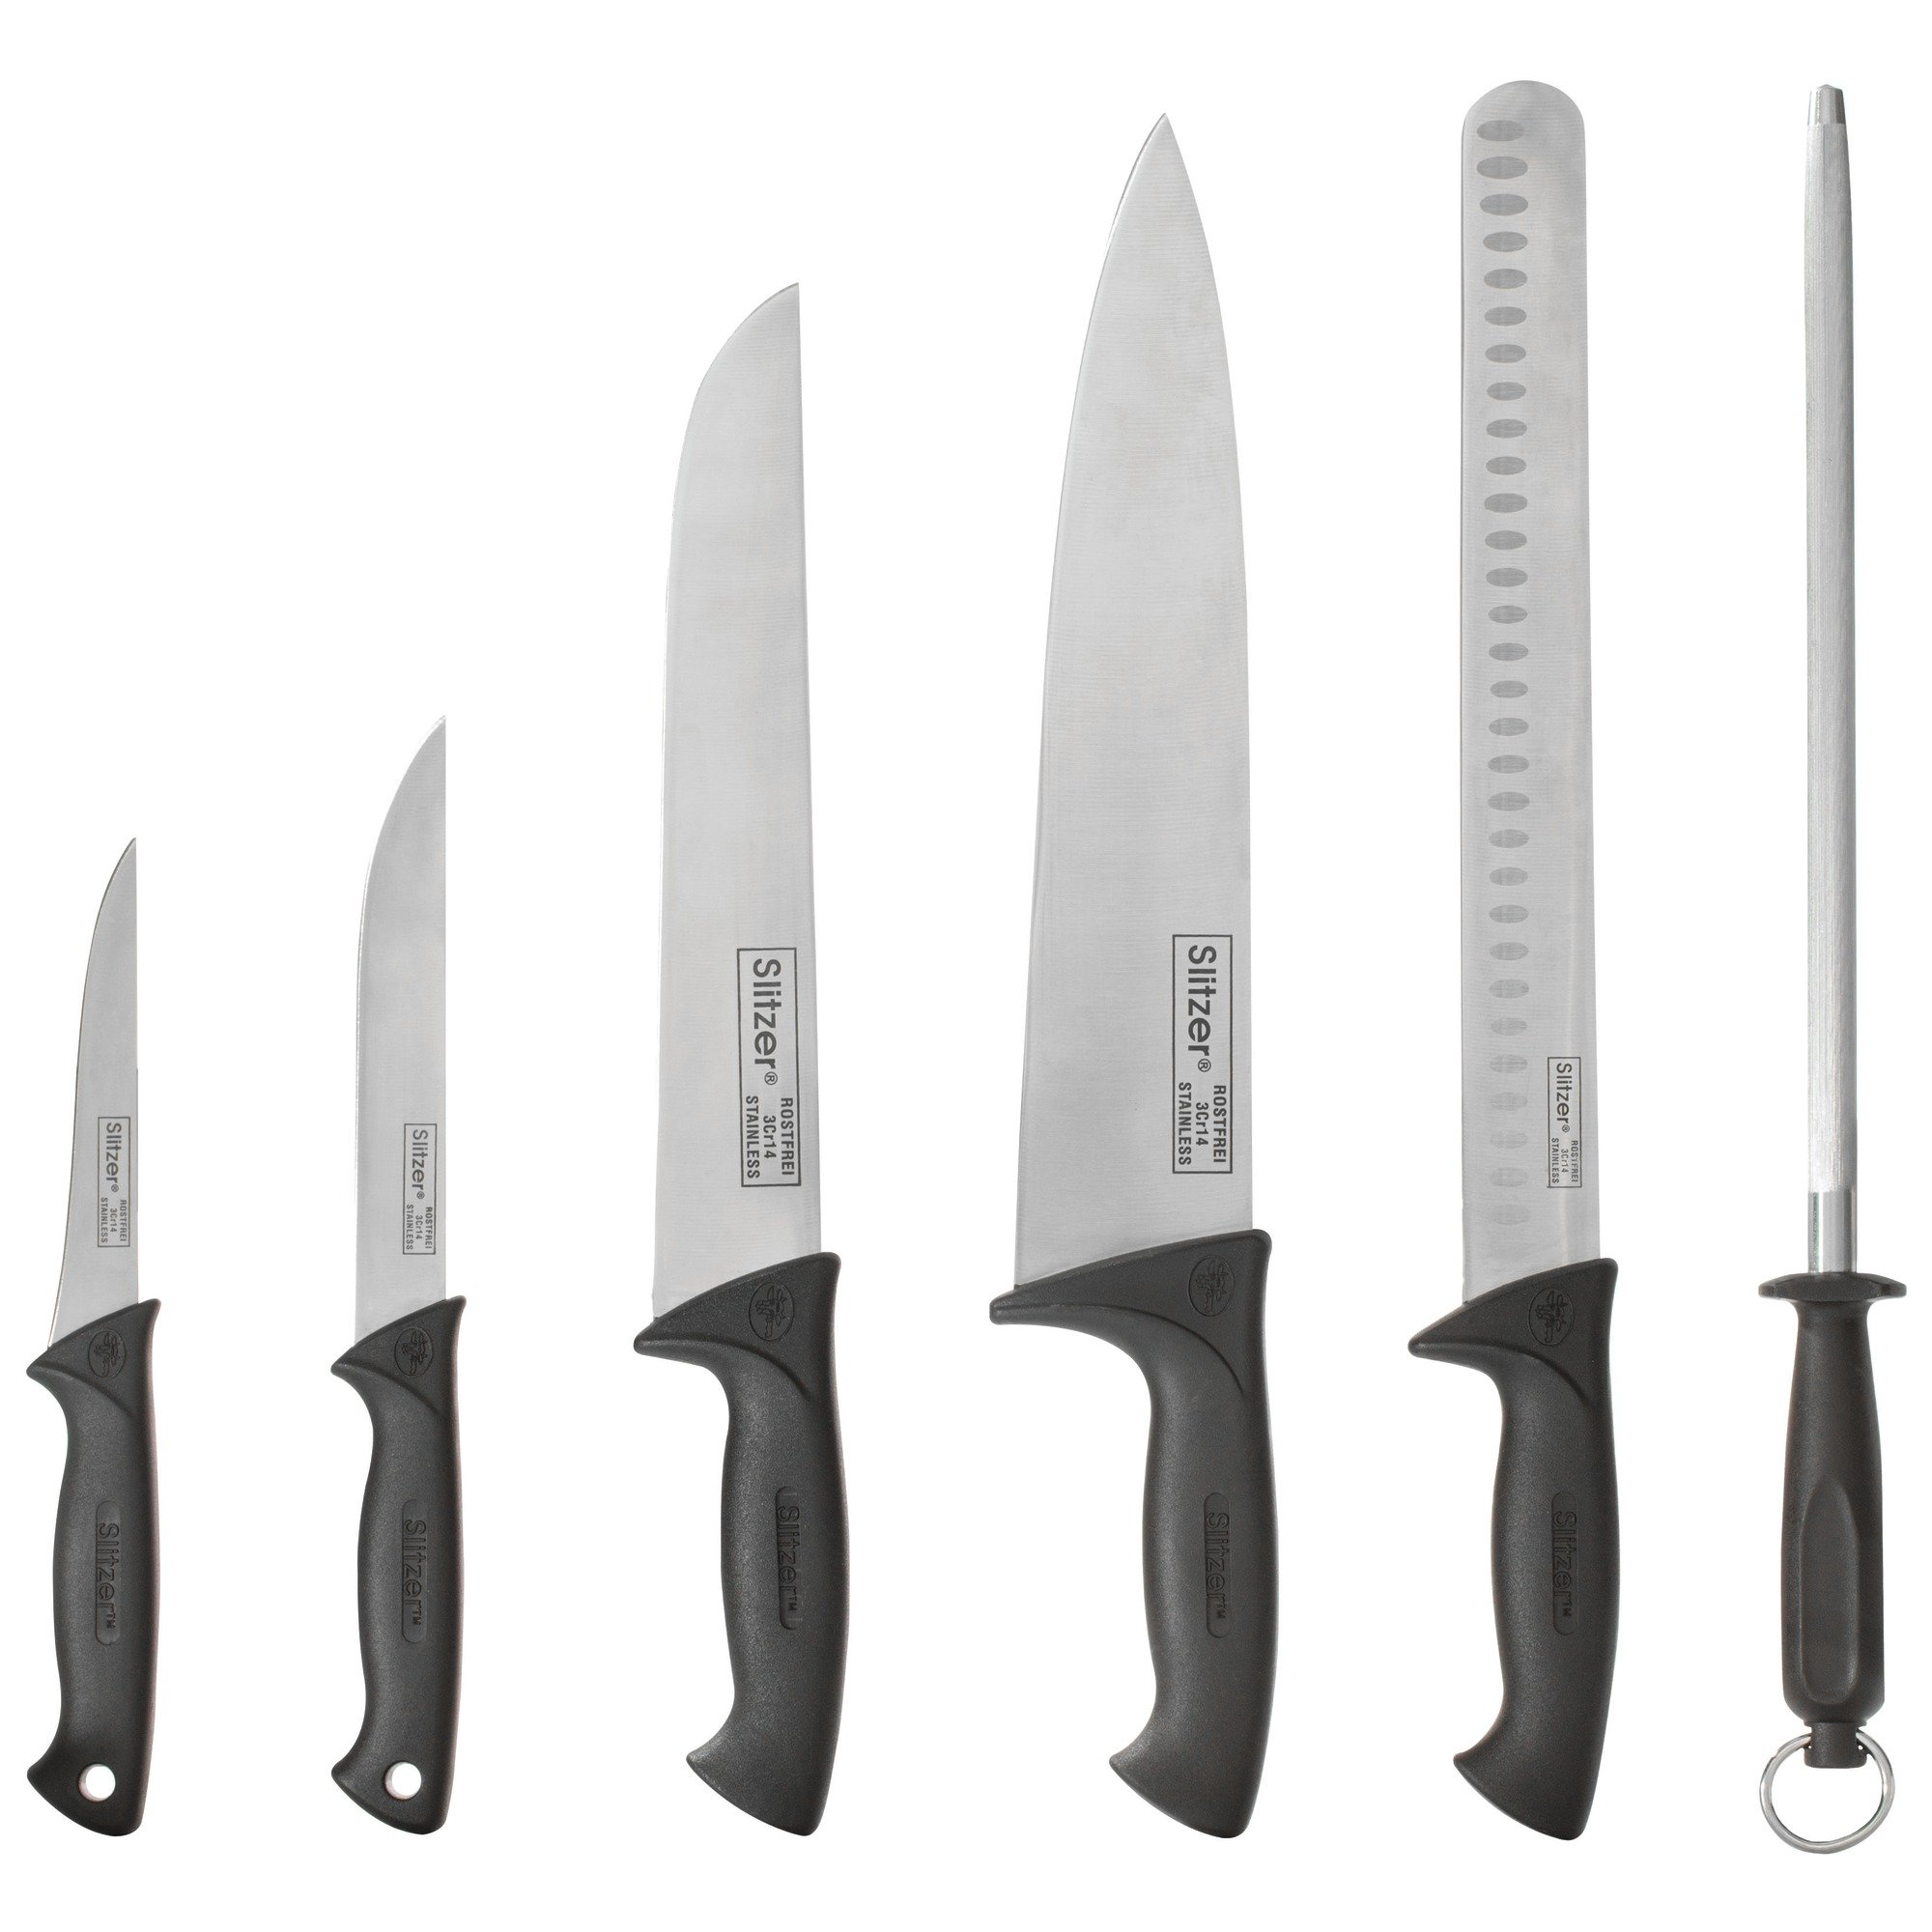 Slitzer Germany 6 Piece Chef's Knife Set, Professional Grade Chef Knives In Convenient Carry Case by Slitzer Germany (Image #2)